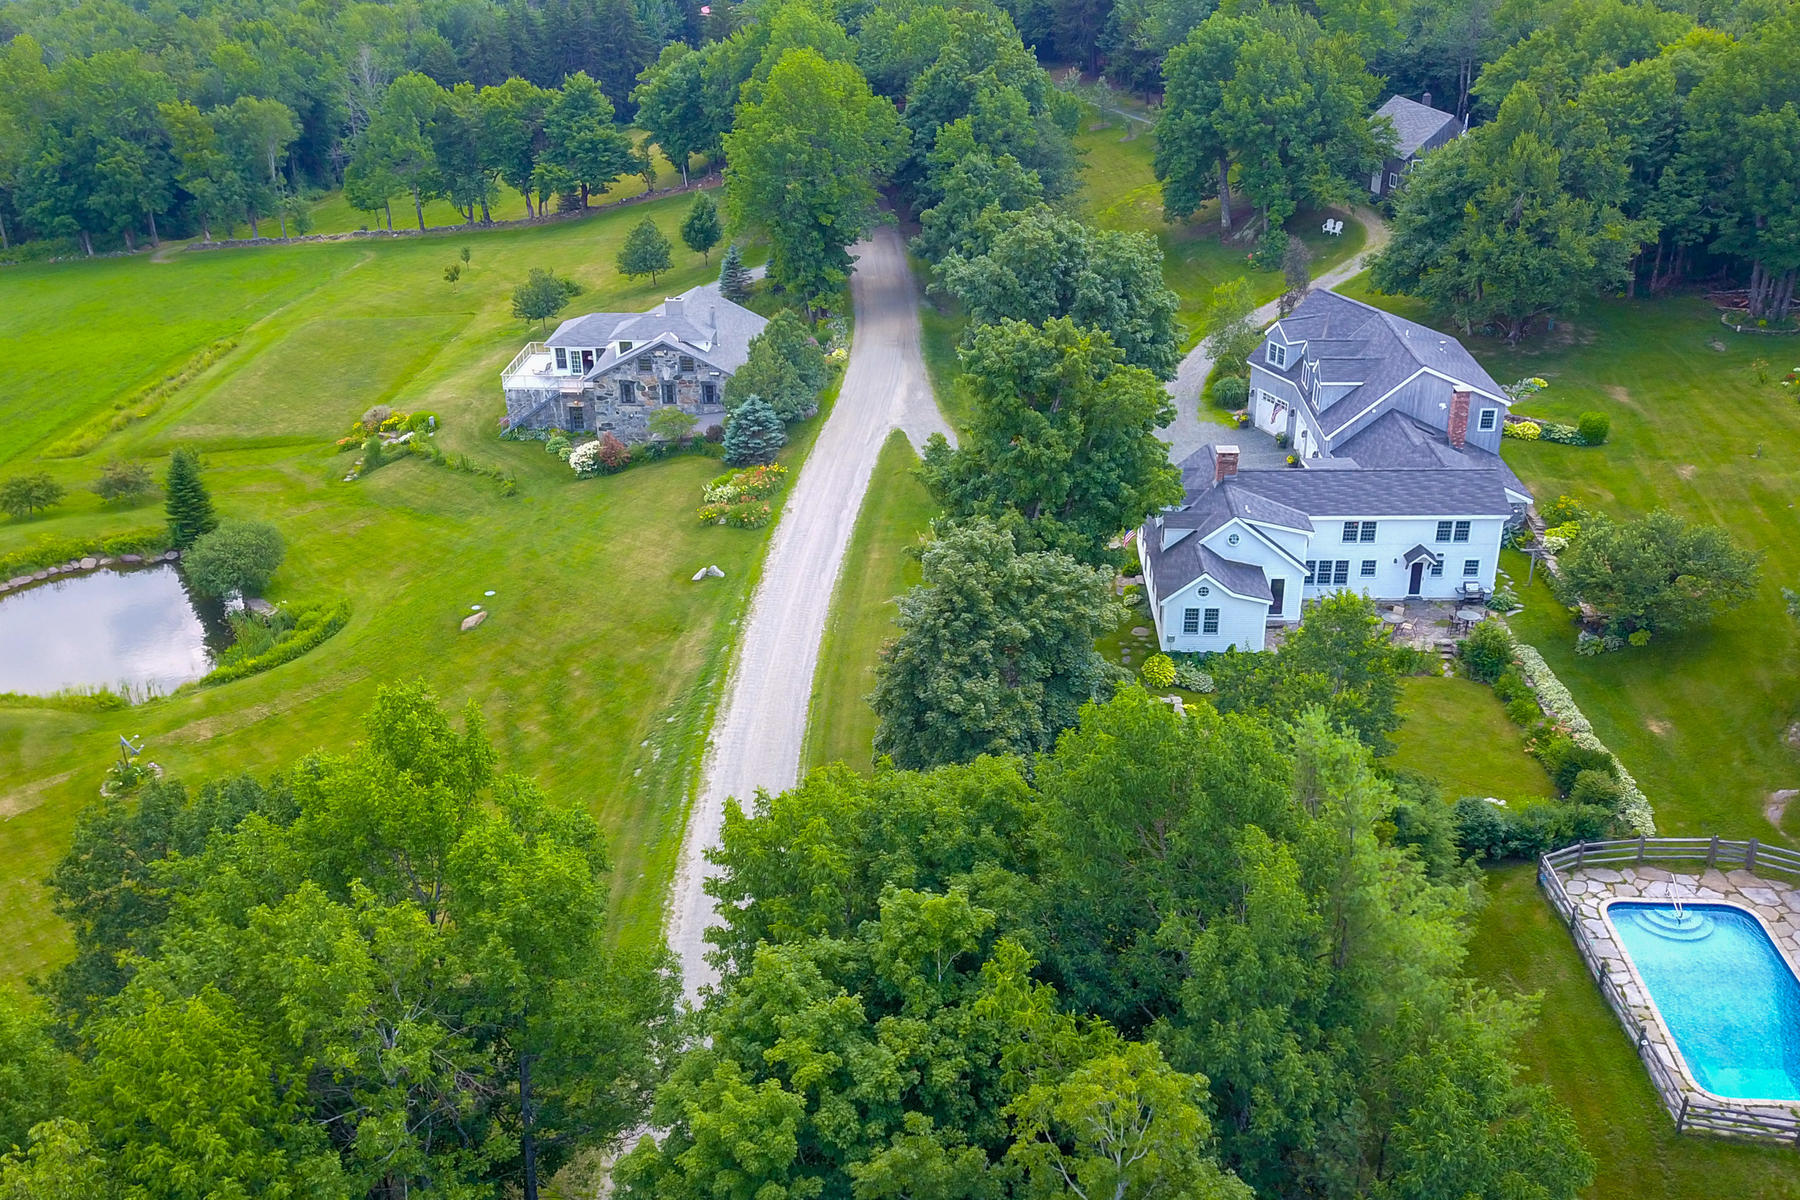 Single Family Homes for Sale at Foxfield Farm 793 Upper Dover Rd Marlboro, Vermont 05344 United States